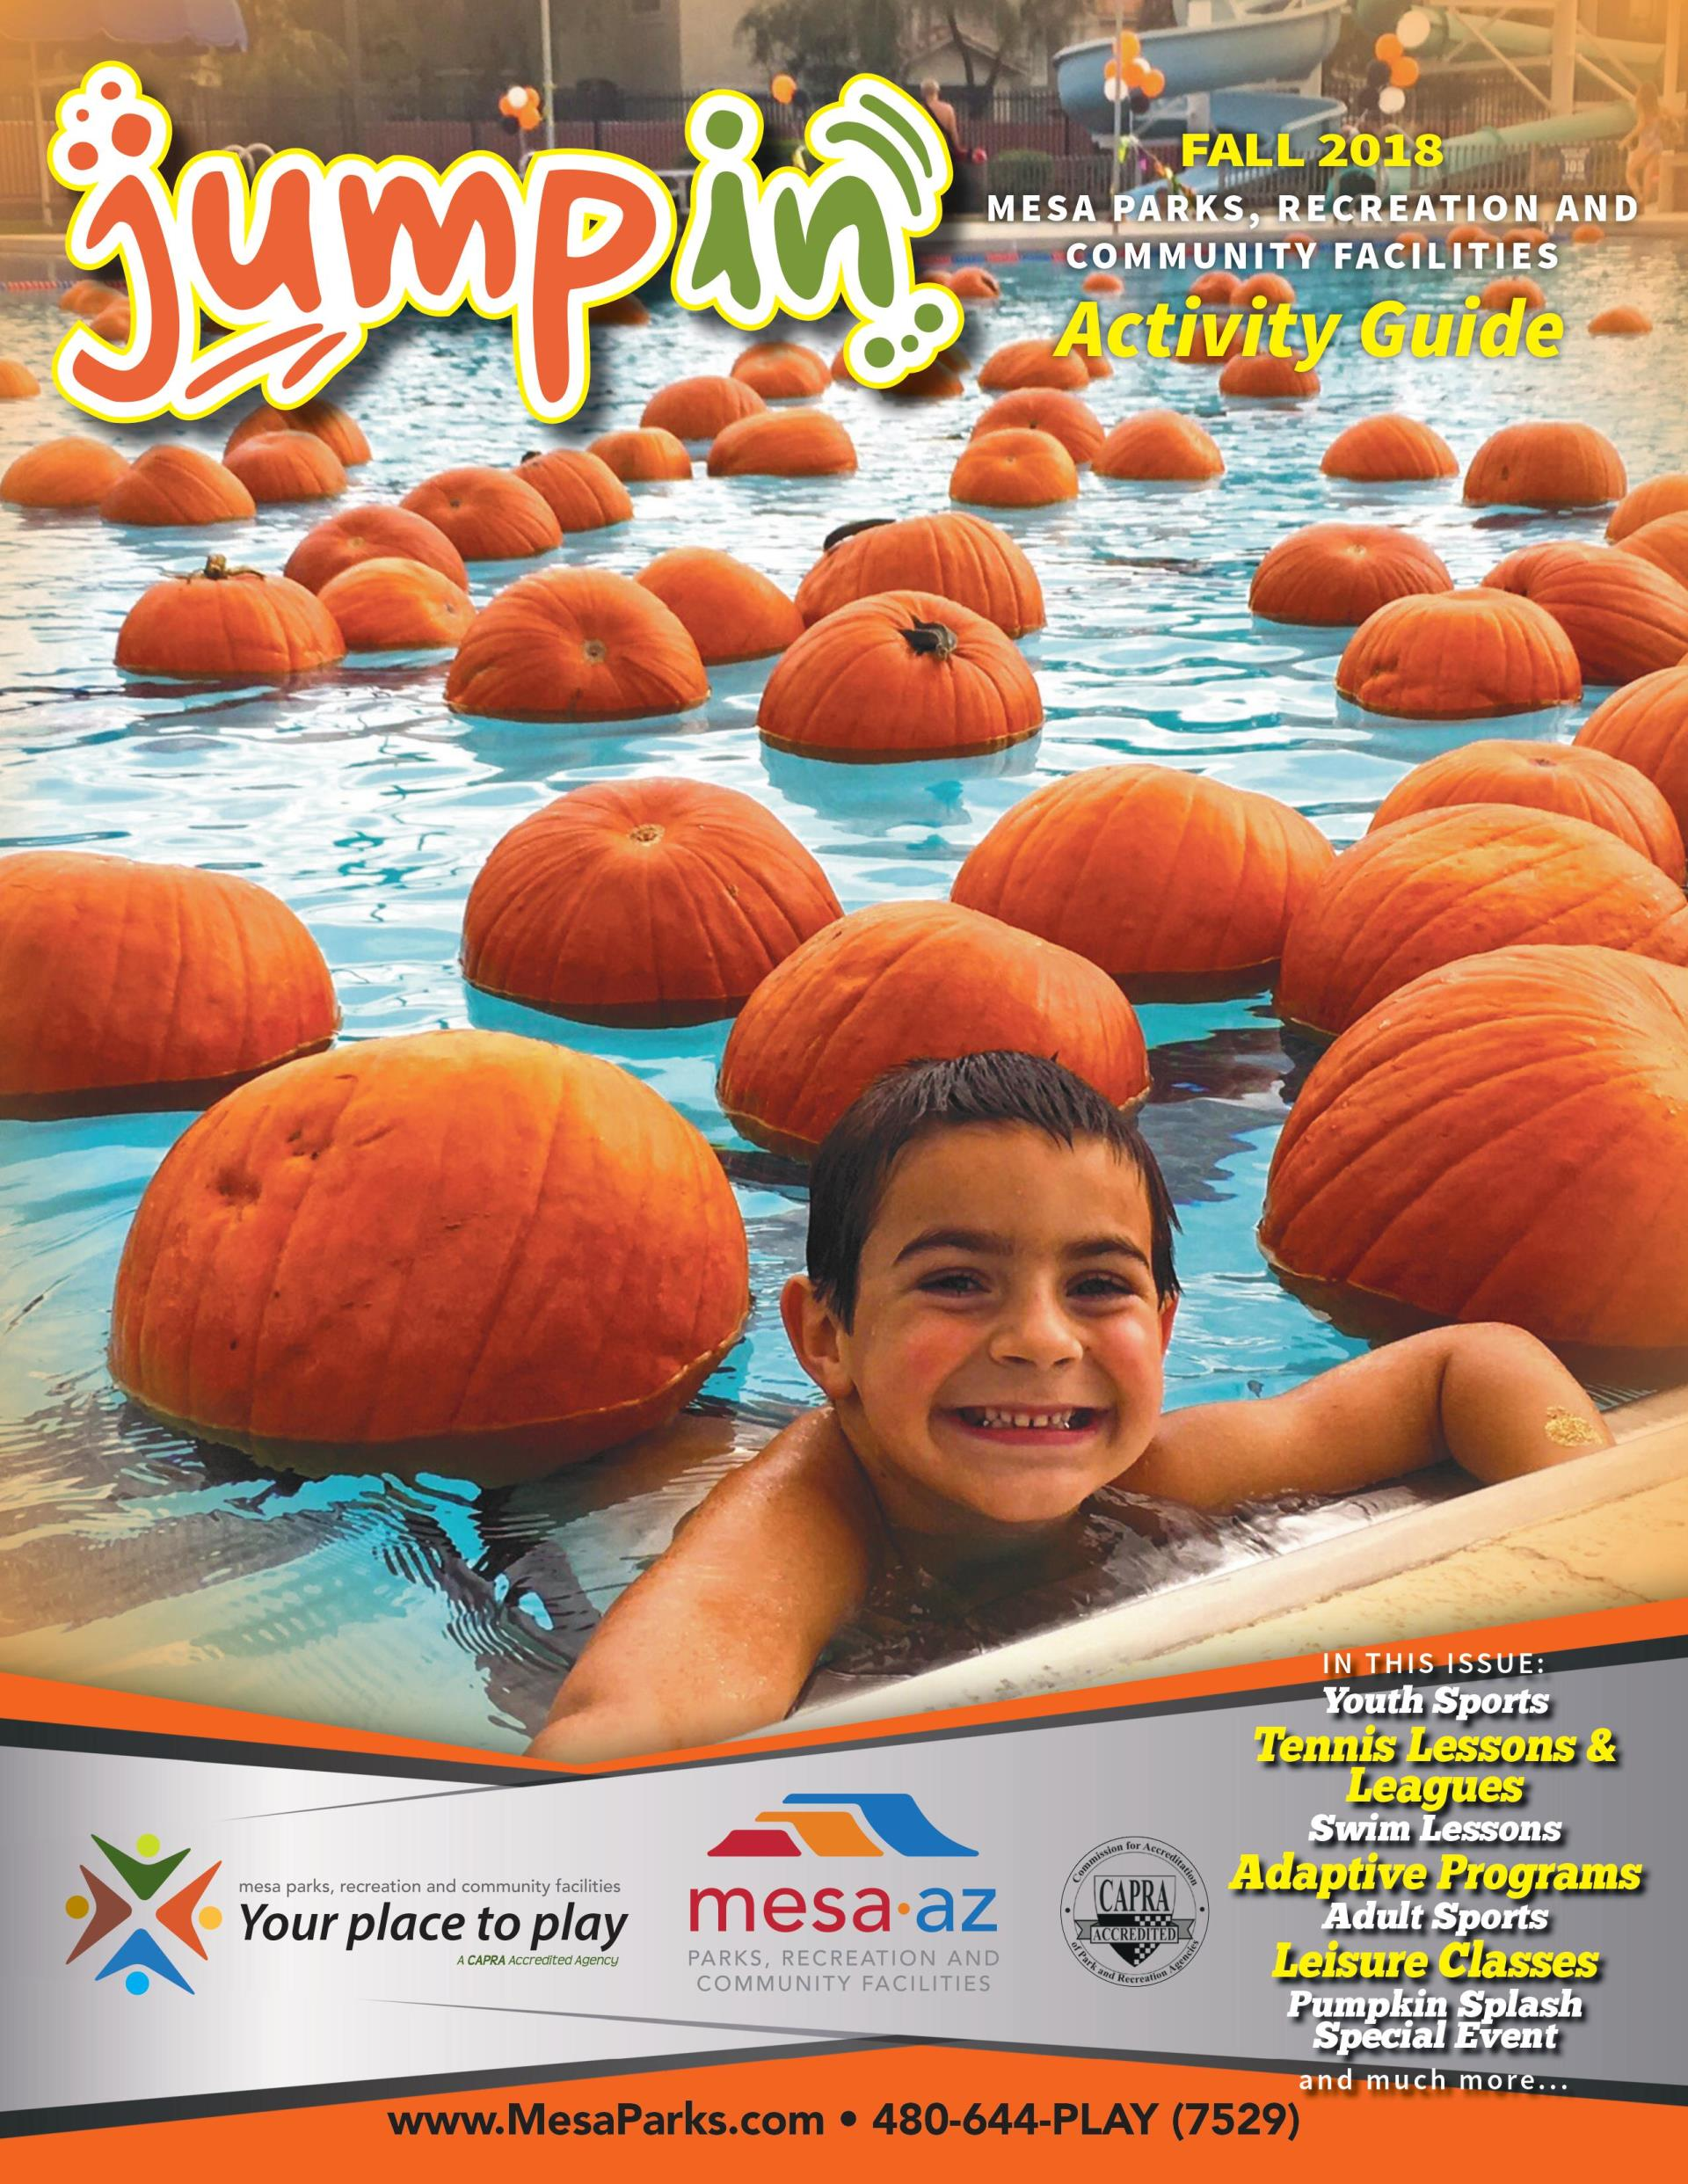 Fall Activity Guide Mesa Parks and Recreation